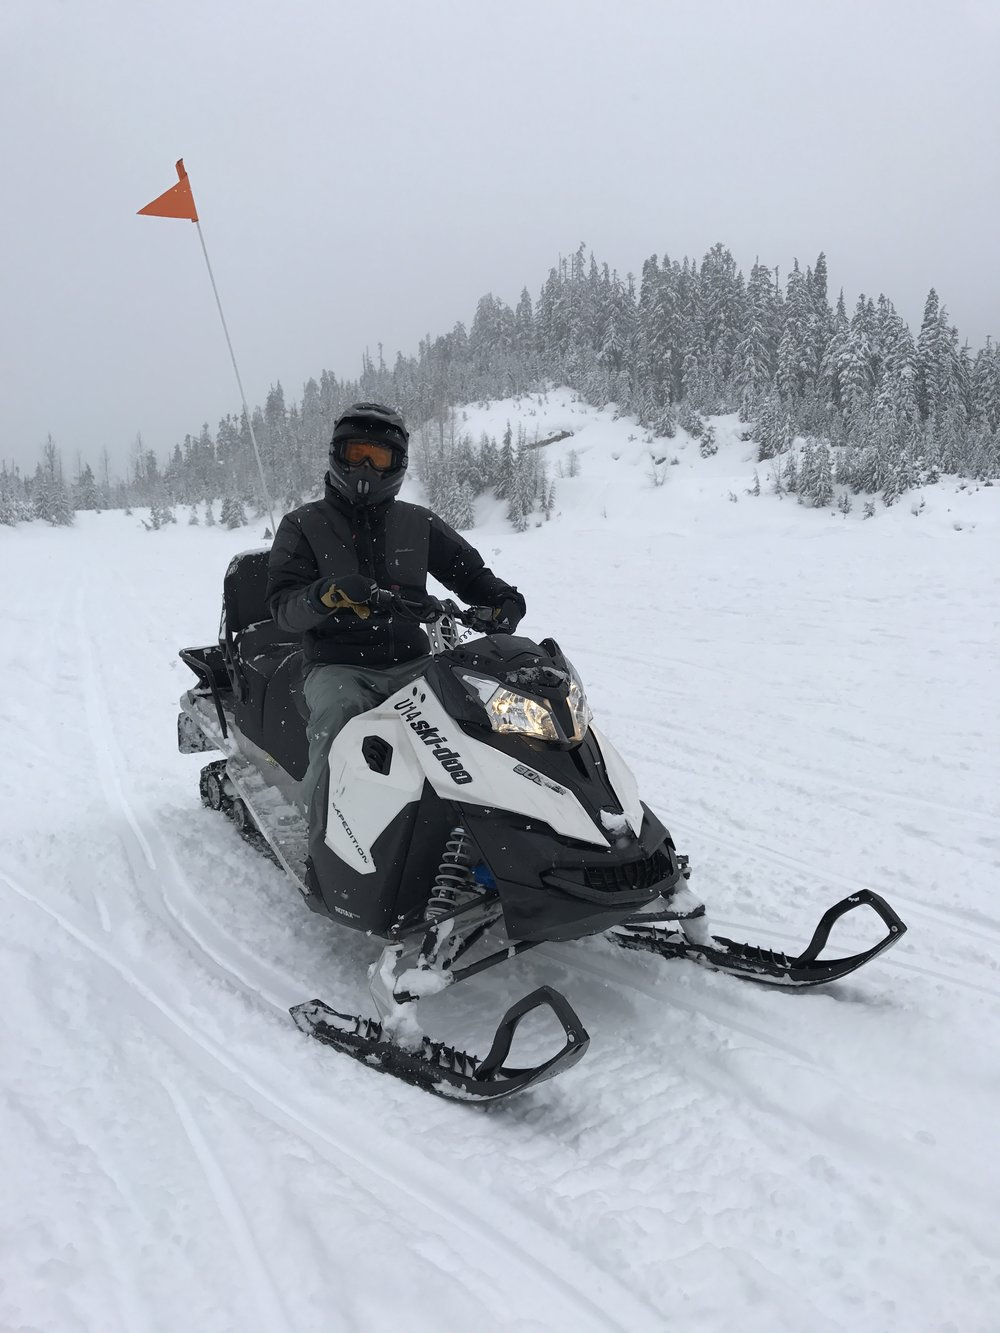 TallGuy on his snowmobile.